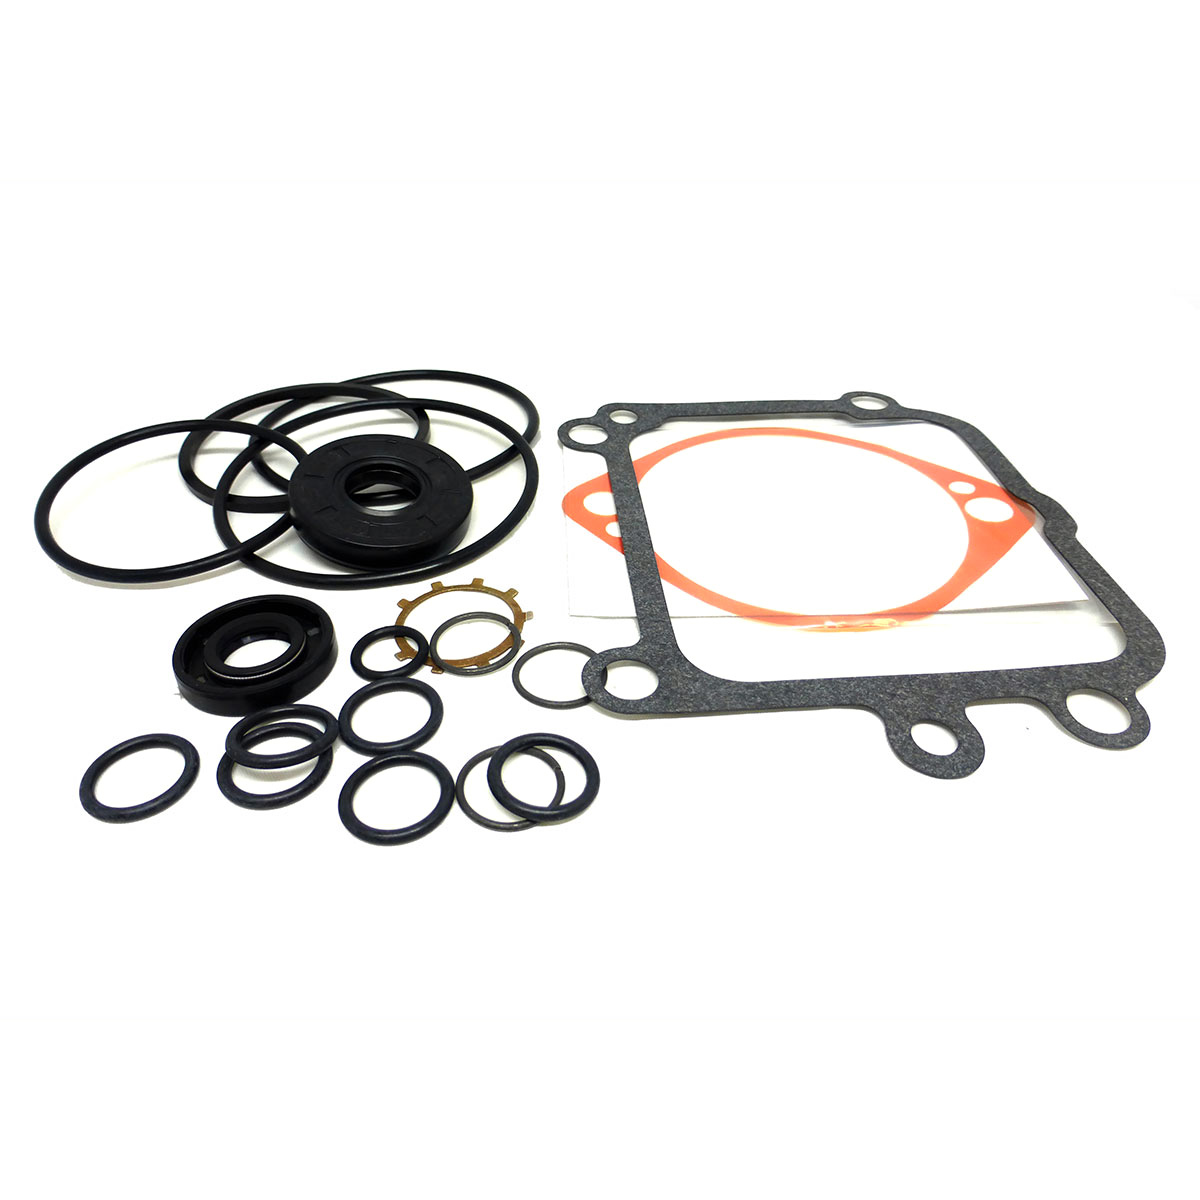 901126 Dixie Chopper Seal Kit 10L Pump Hydro-Gear